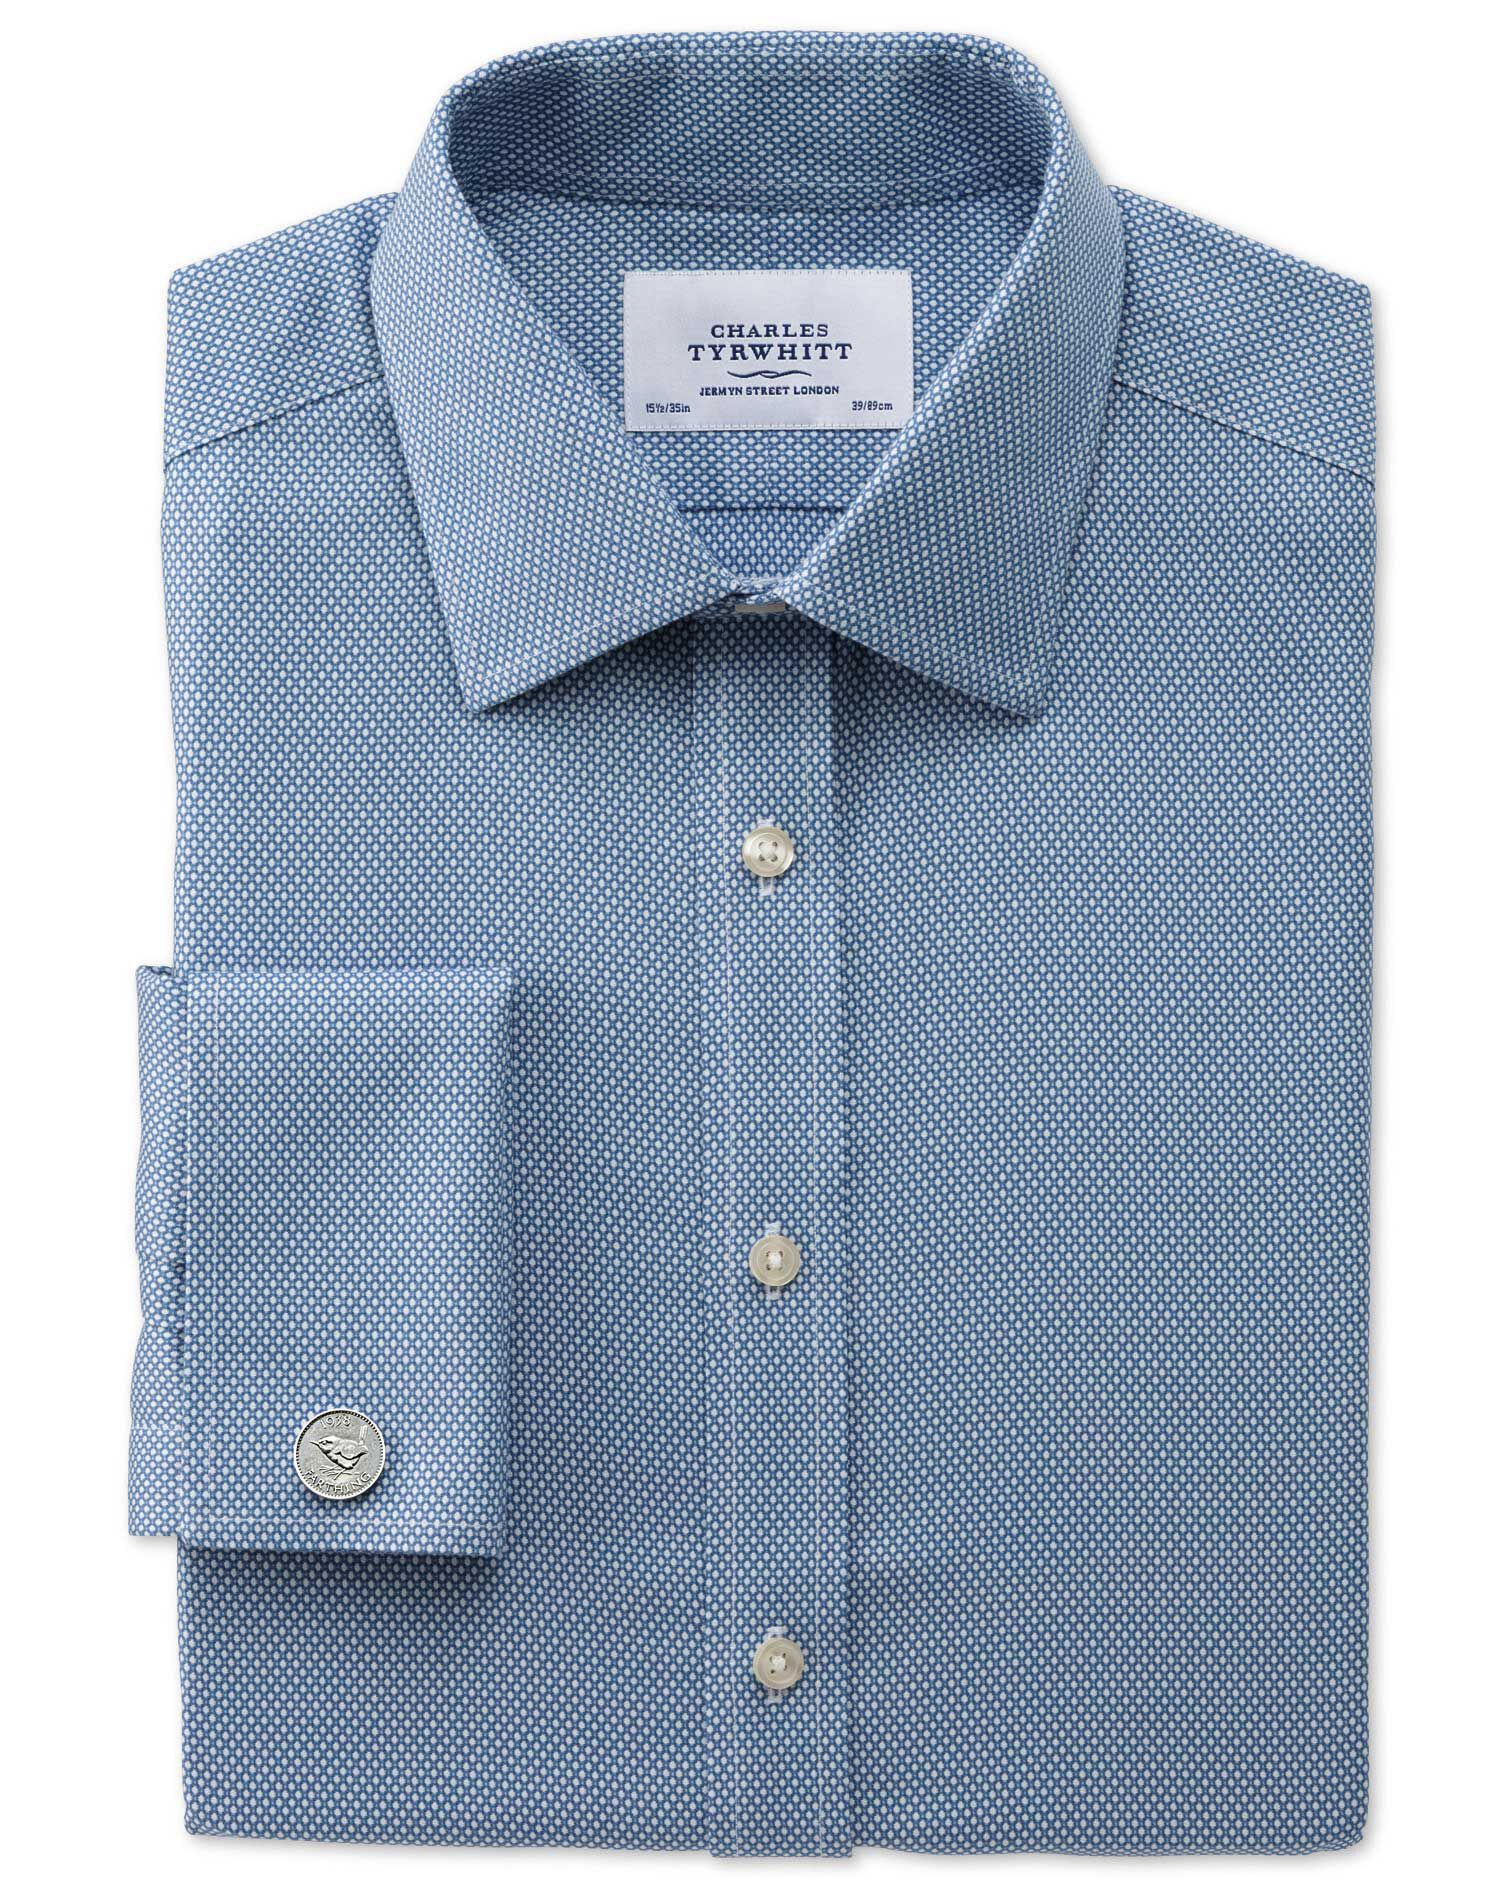 Extra Slim Fit Non-Iron Honeycomb Mid Blue Cotton Formal Shirt Single Cuff Size 15/35 by Charles Tyr